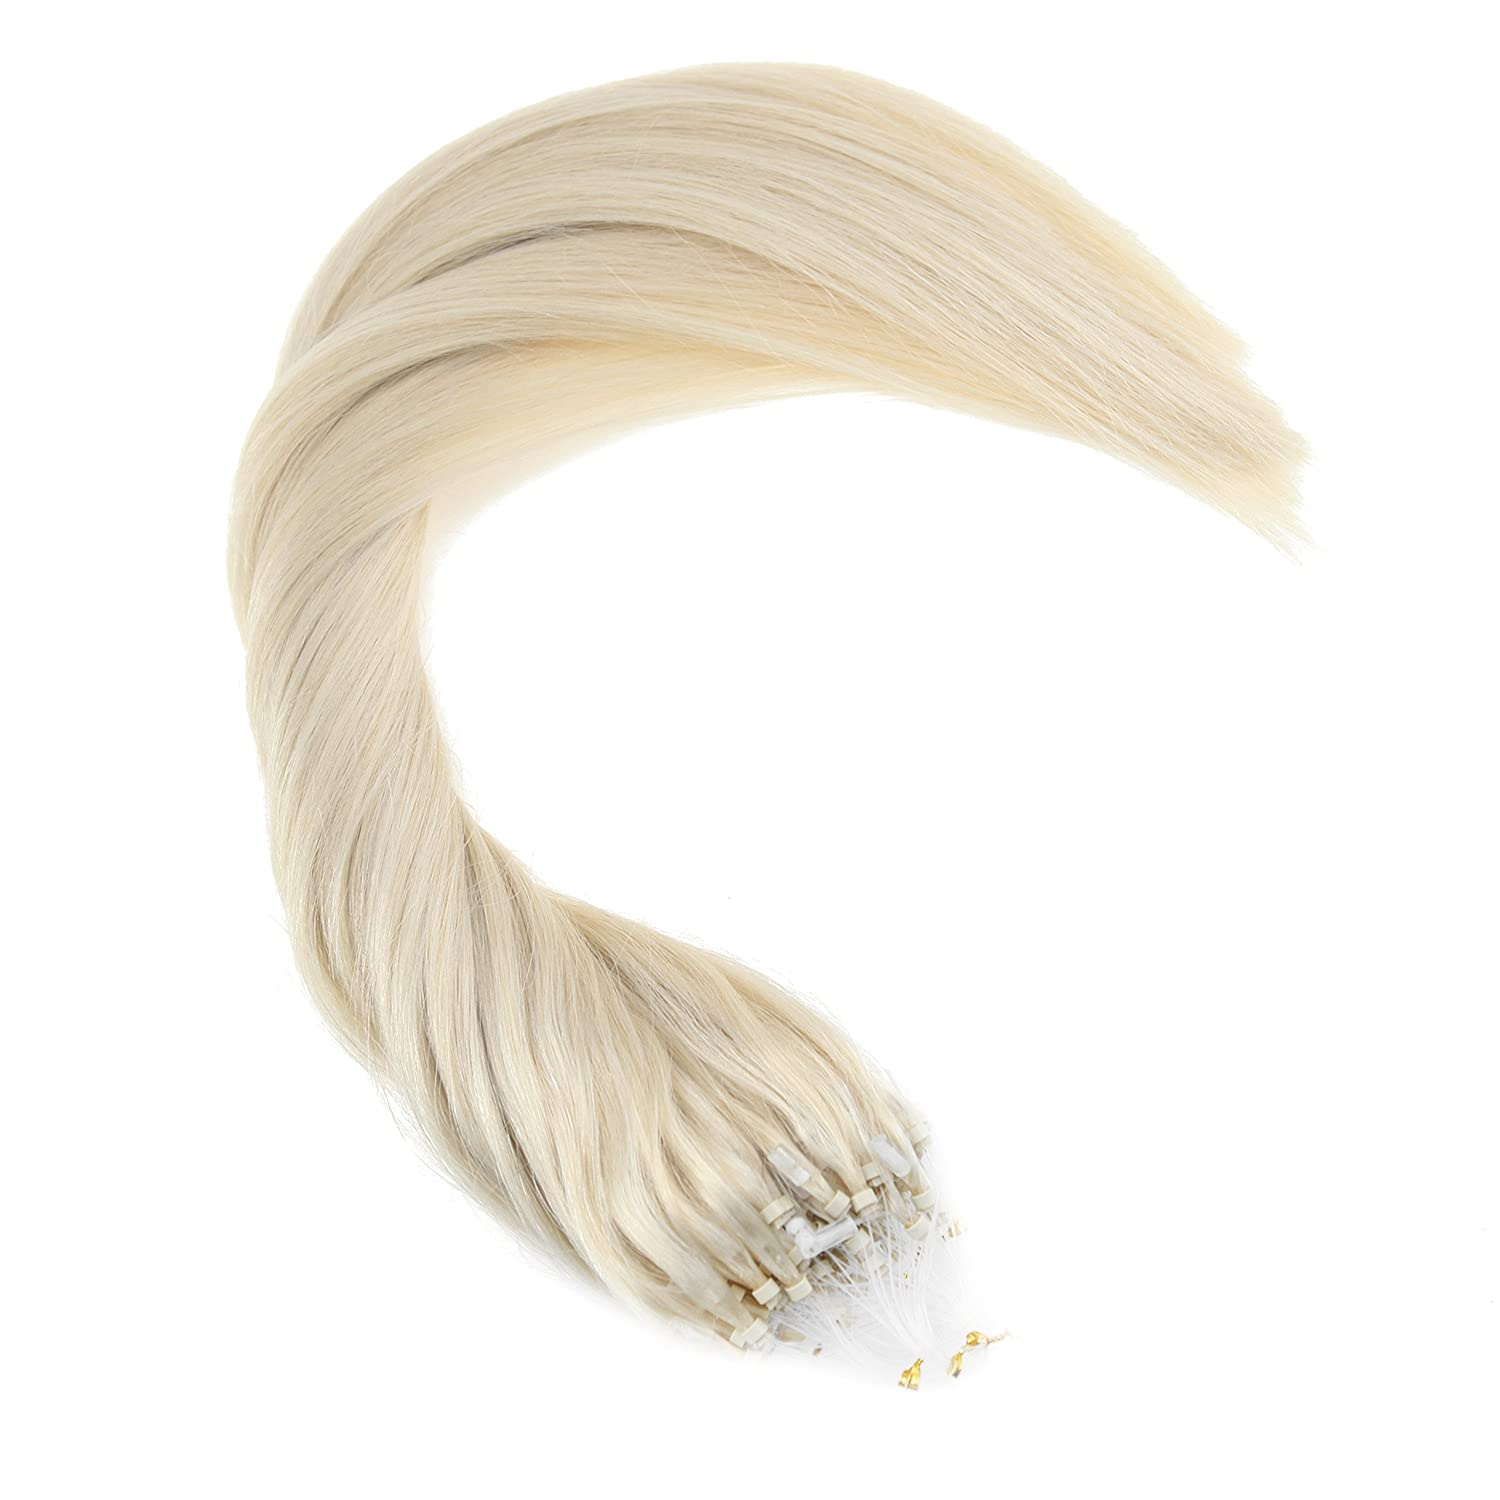 Ugeat 55cm/22 Pulgadas Micro Ring Pelo Natural Liso Recto 1g/s Total 50g/Paquete Extensiones Naturales Micro Loop Color #60 Platinum Blonde: Amazon.es: ...